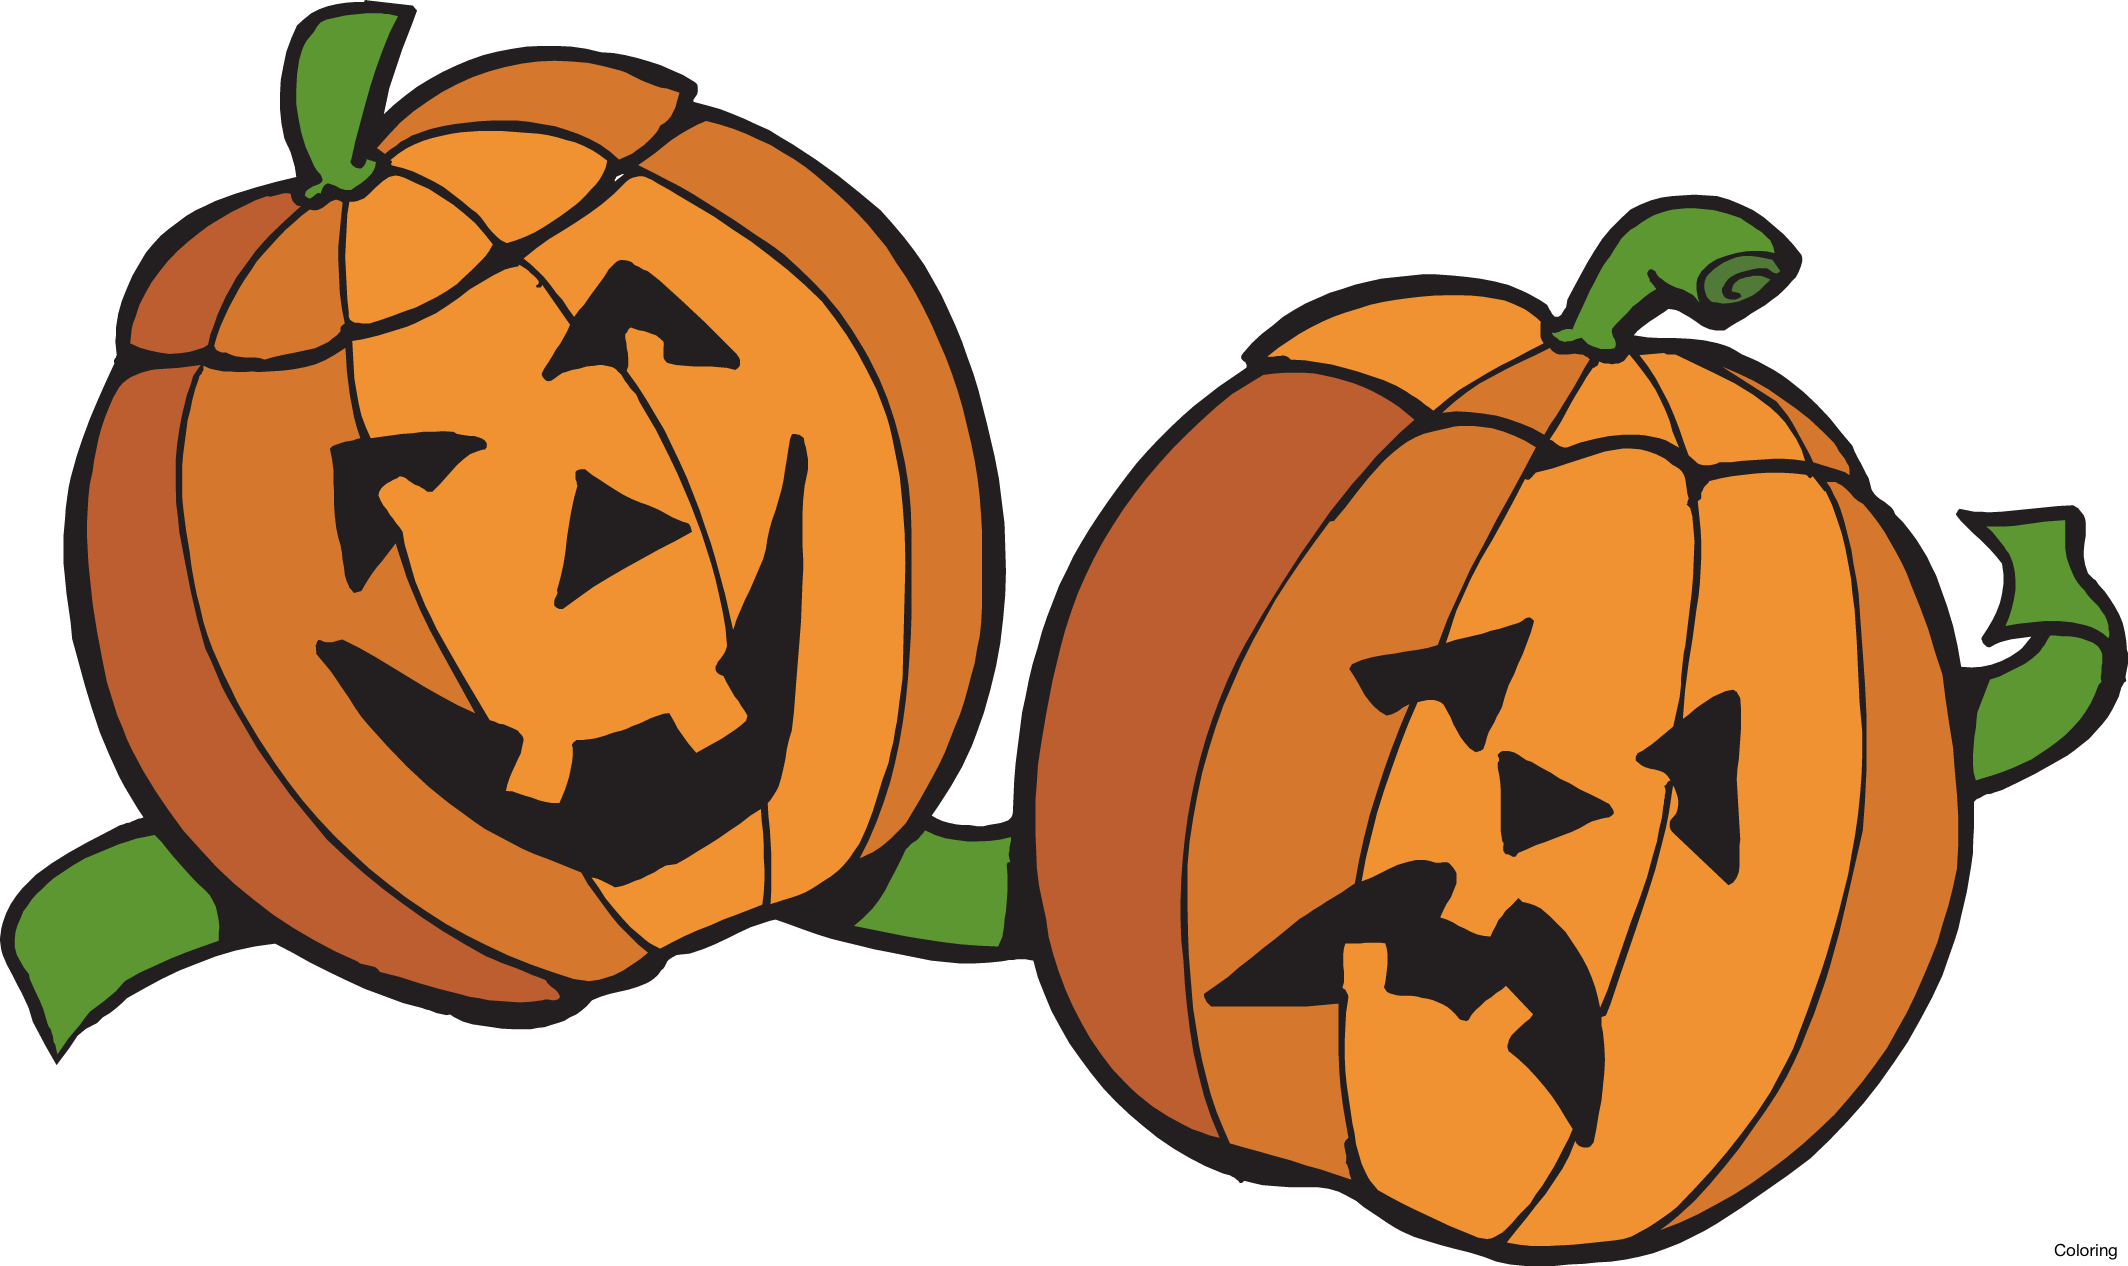 Silly pumpkin faces clipart png transparent library Pumpkin Patch Clipart (60+) png transparent library